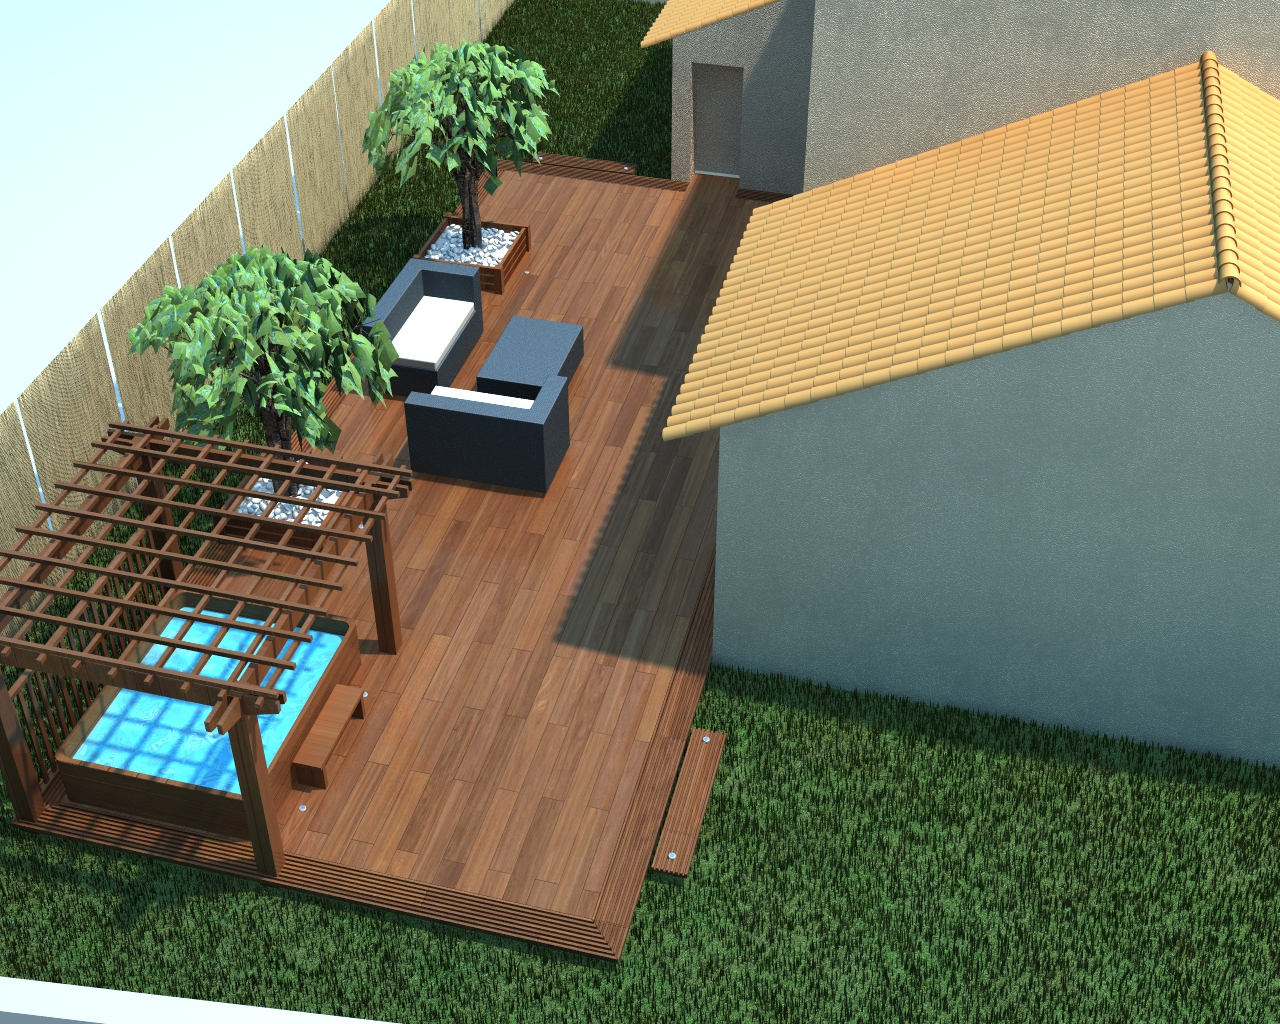 Conception terrasse et am nagement spa et salon de jardin for Amenagement de salon de jardin